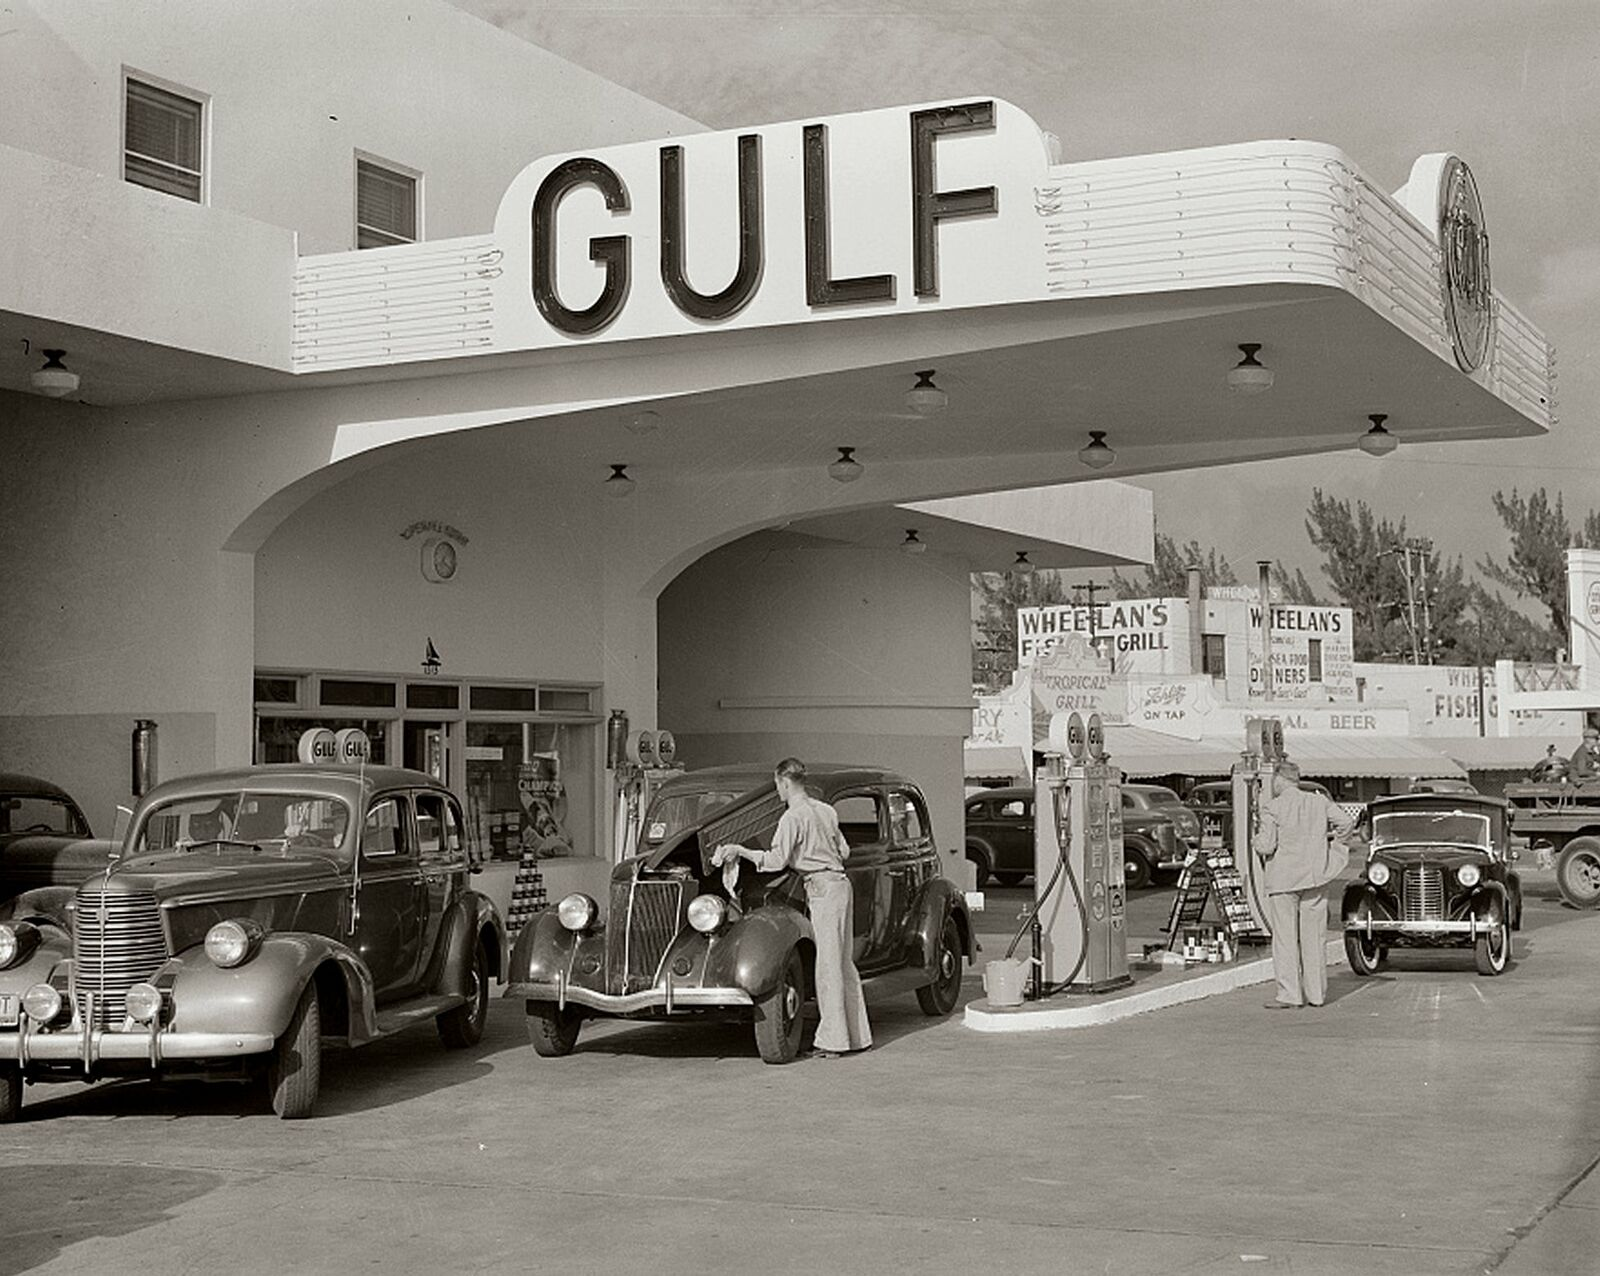 1940s-GULF-GAS-STATION-Old-Cars-PHOTO.jpg